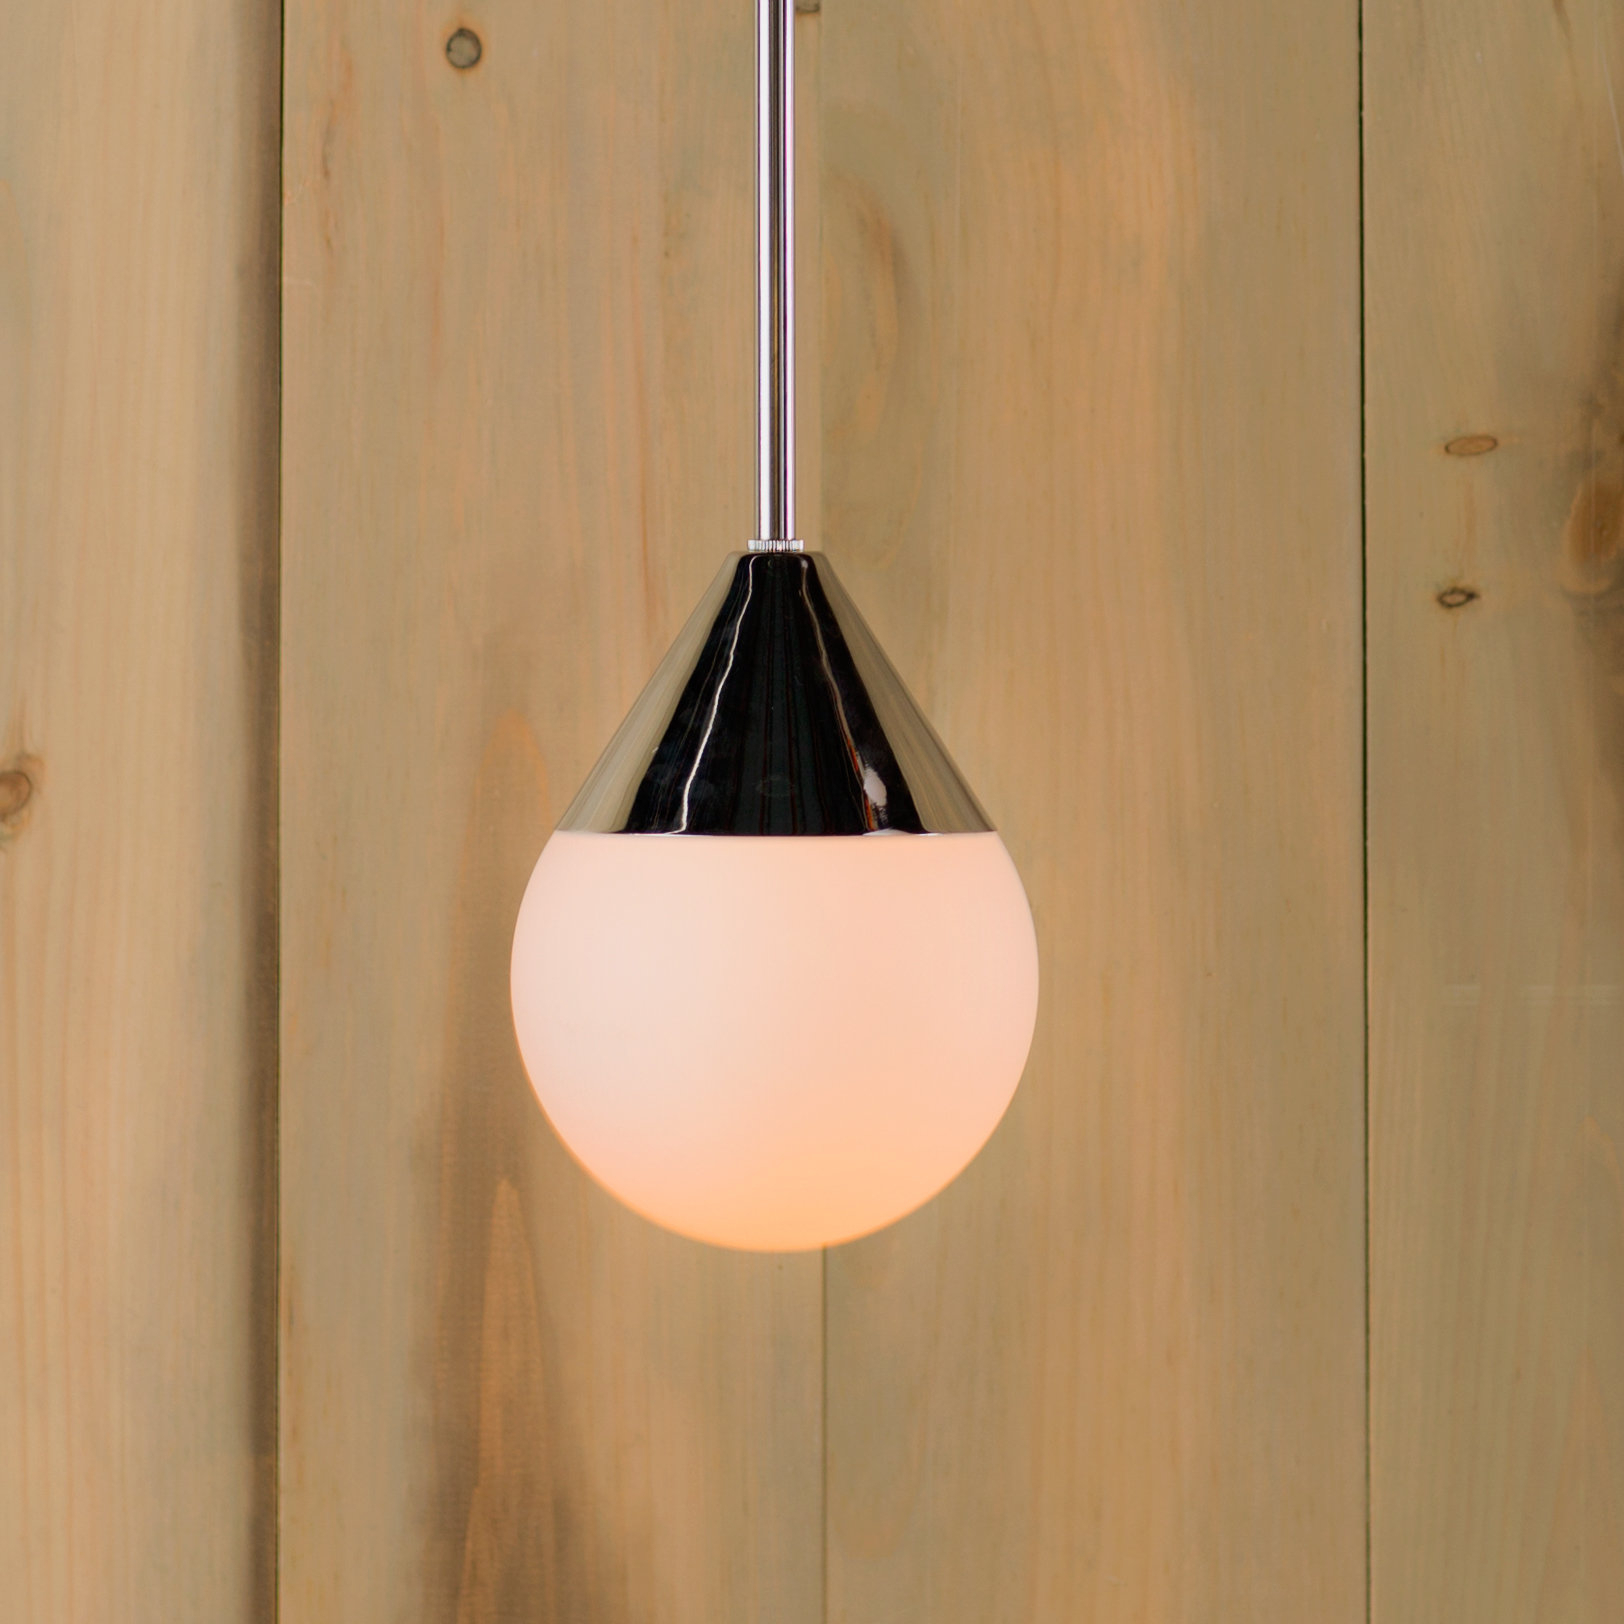 Ledford 1 Light Single Globe Pendant For 2019 Prange 1 Light Single Globe Pendants (View 24 of 25)